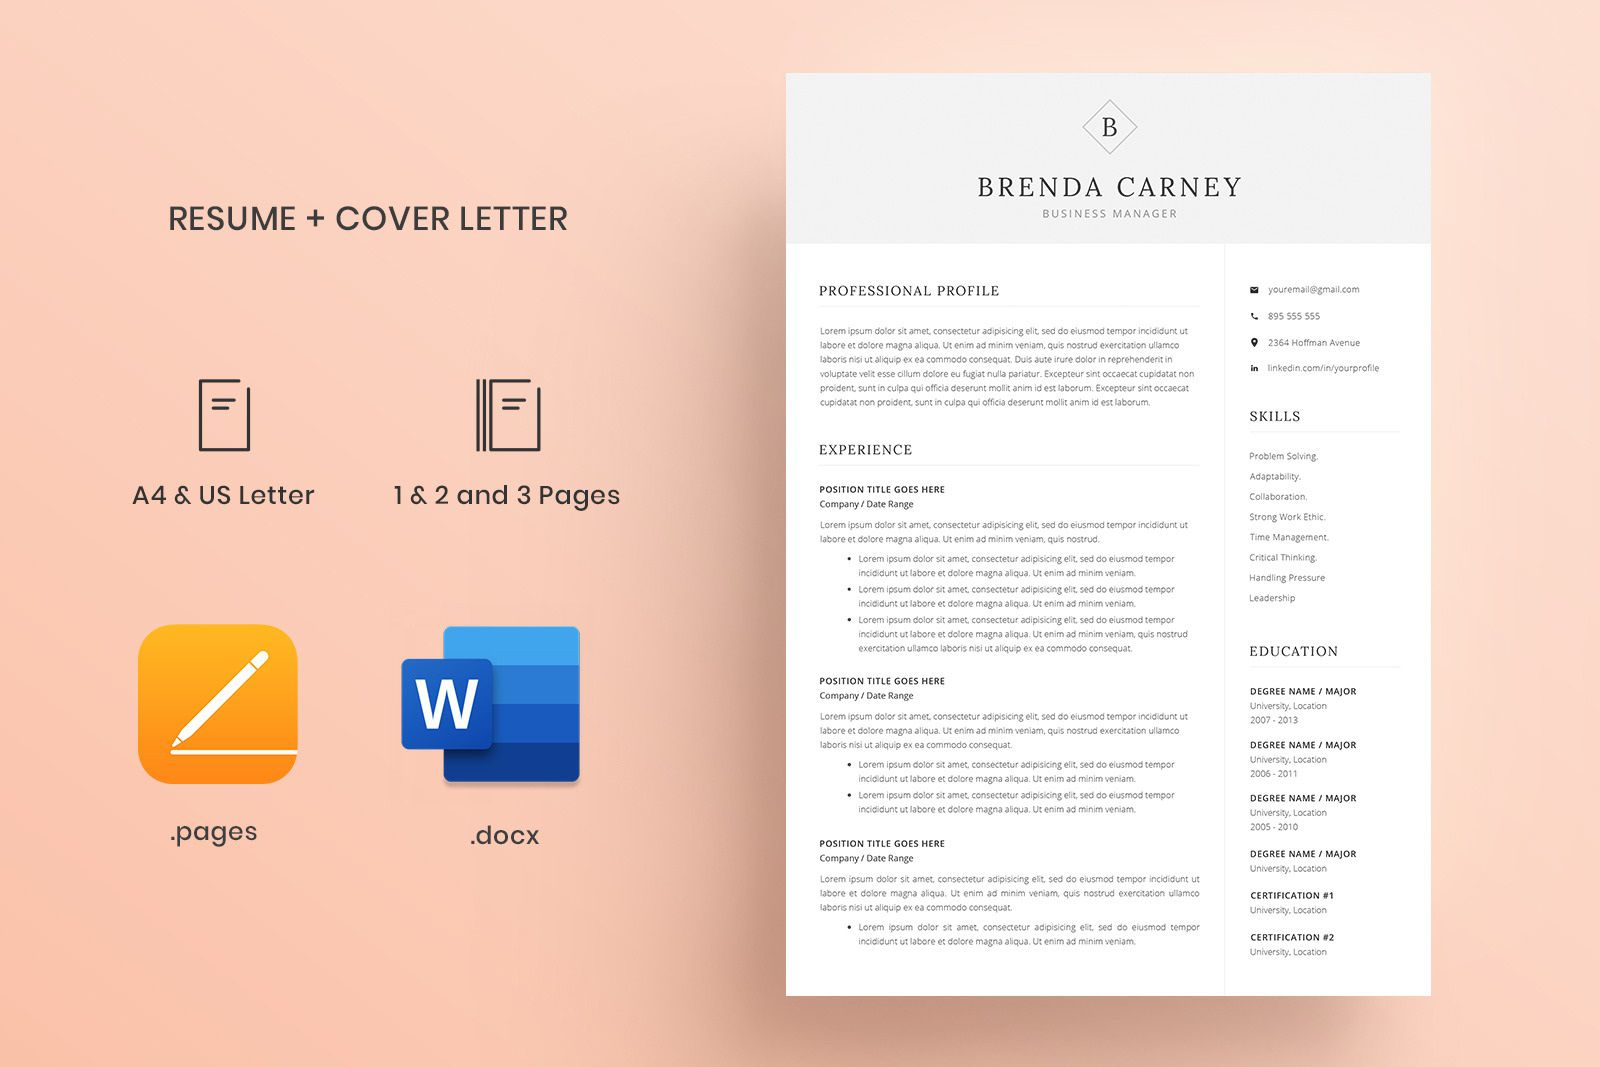 000 Unforgettable Resume Cover Letter Template Docx High Definition Full